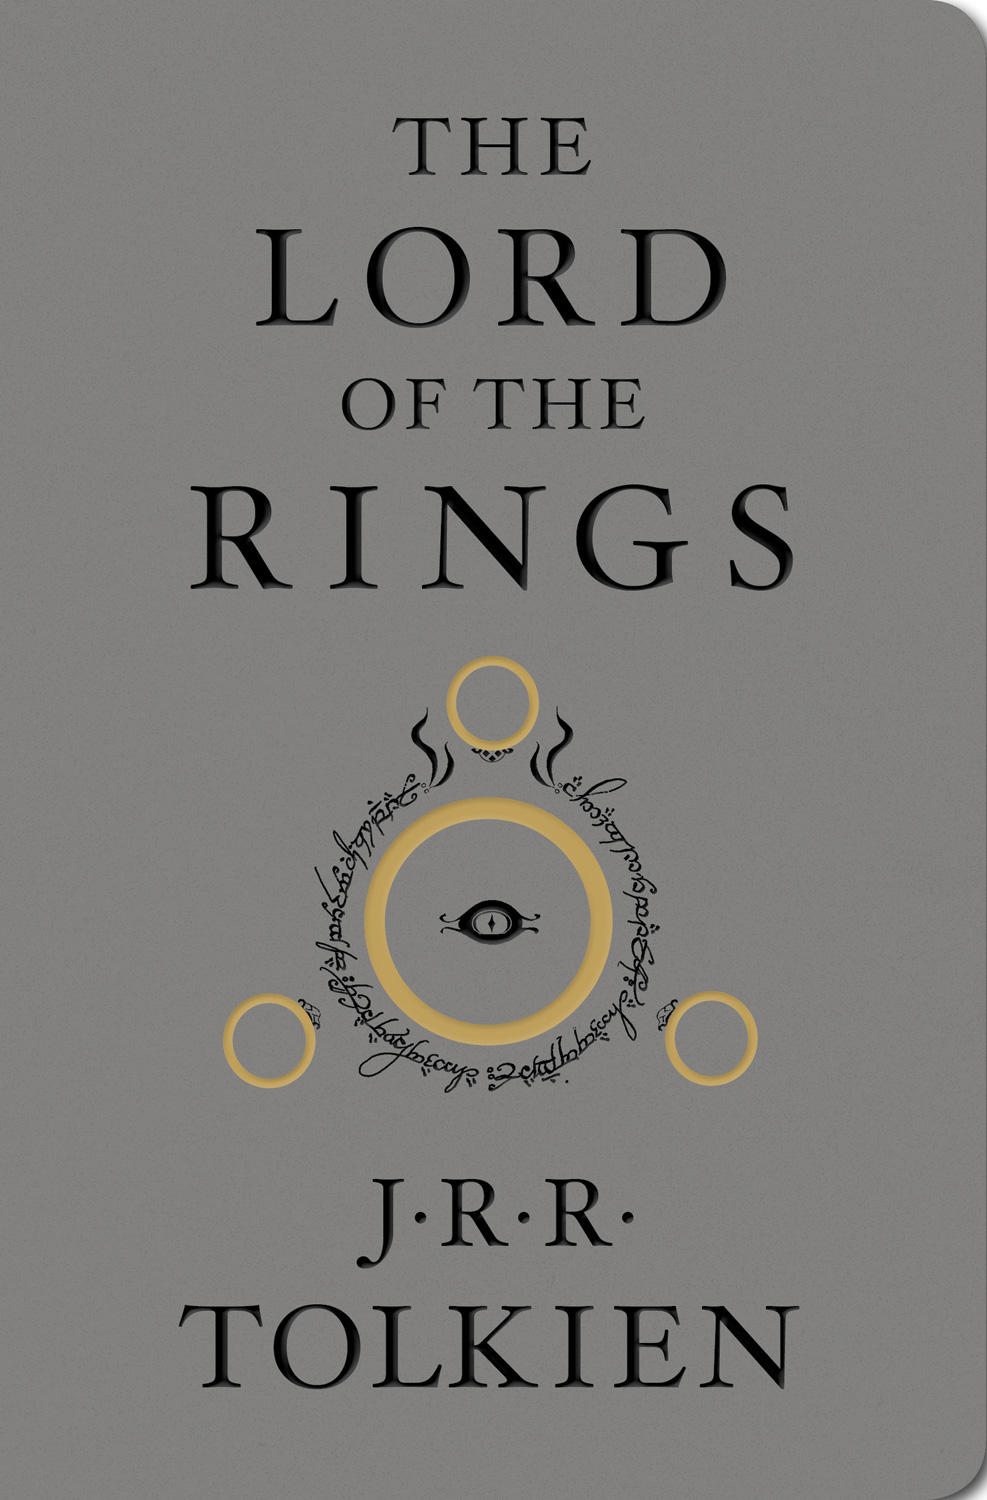 Order The Lord of the Rings Deluxe Edition, ISBN